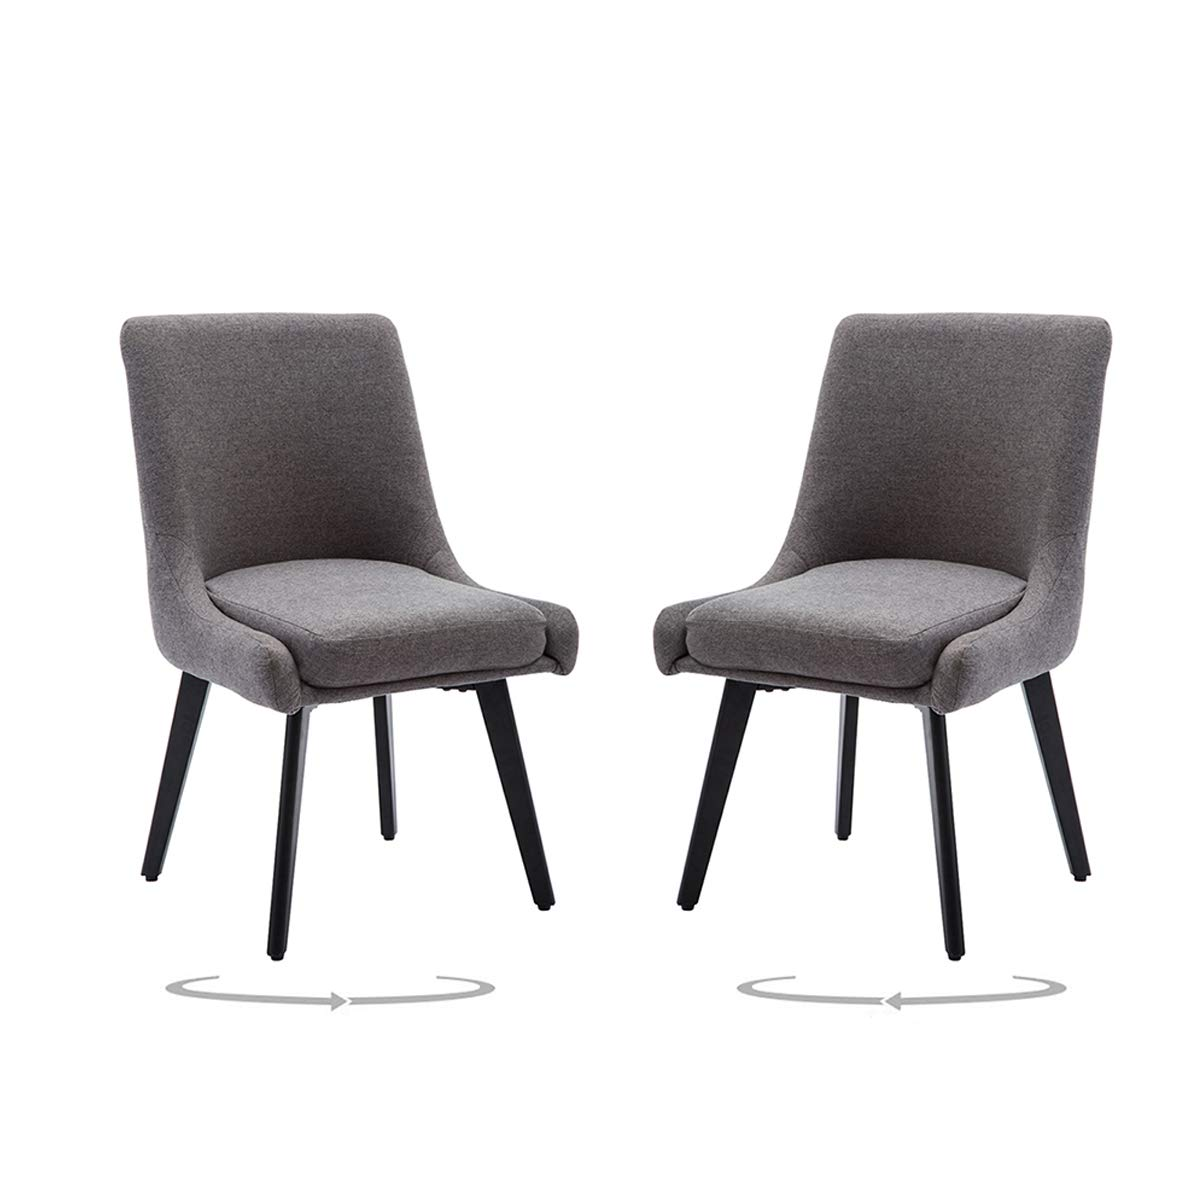 Upholstered Swivel Dining Chair Accent Chairs for Home Kitchen Office Desk Set of 2 with Metal Leg